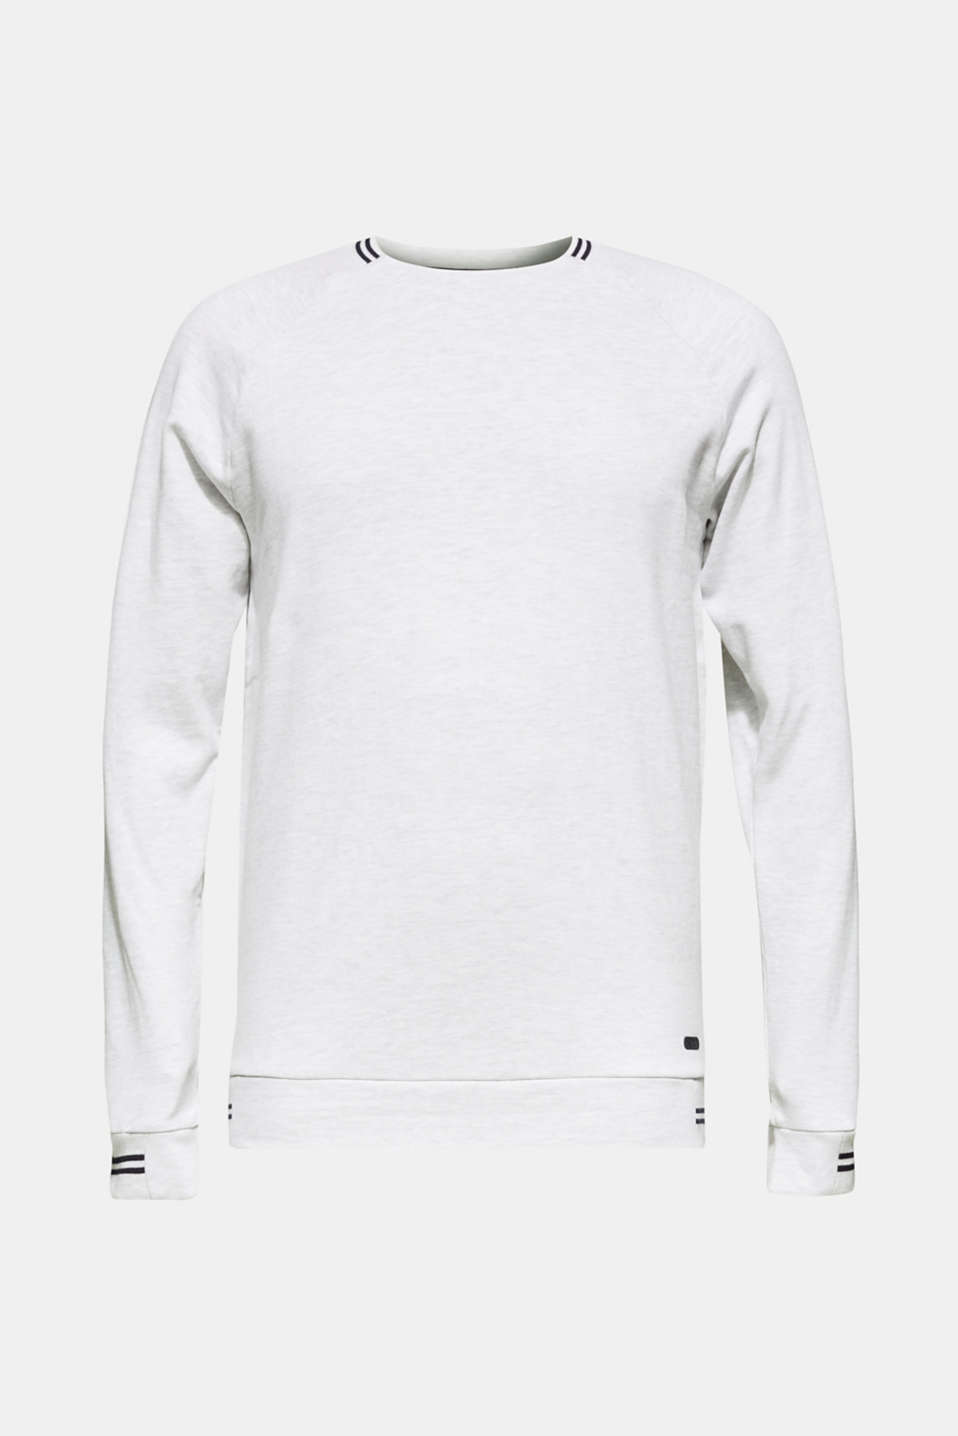 Sweatshirt in 100% cotton, OFF WHITE, detail image number 6